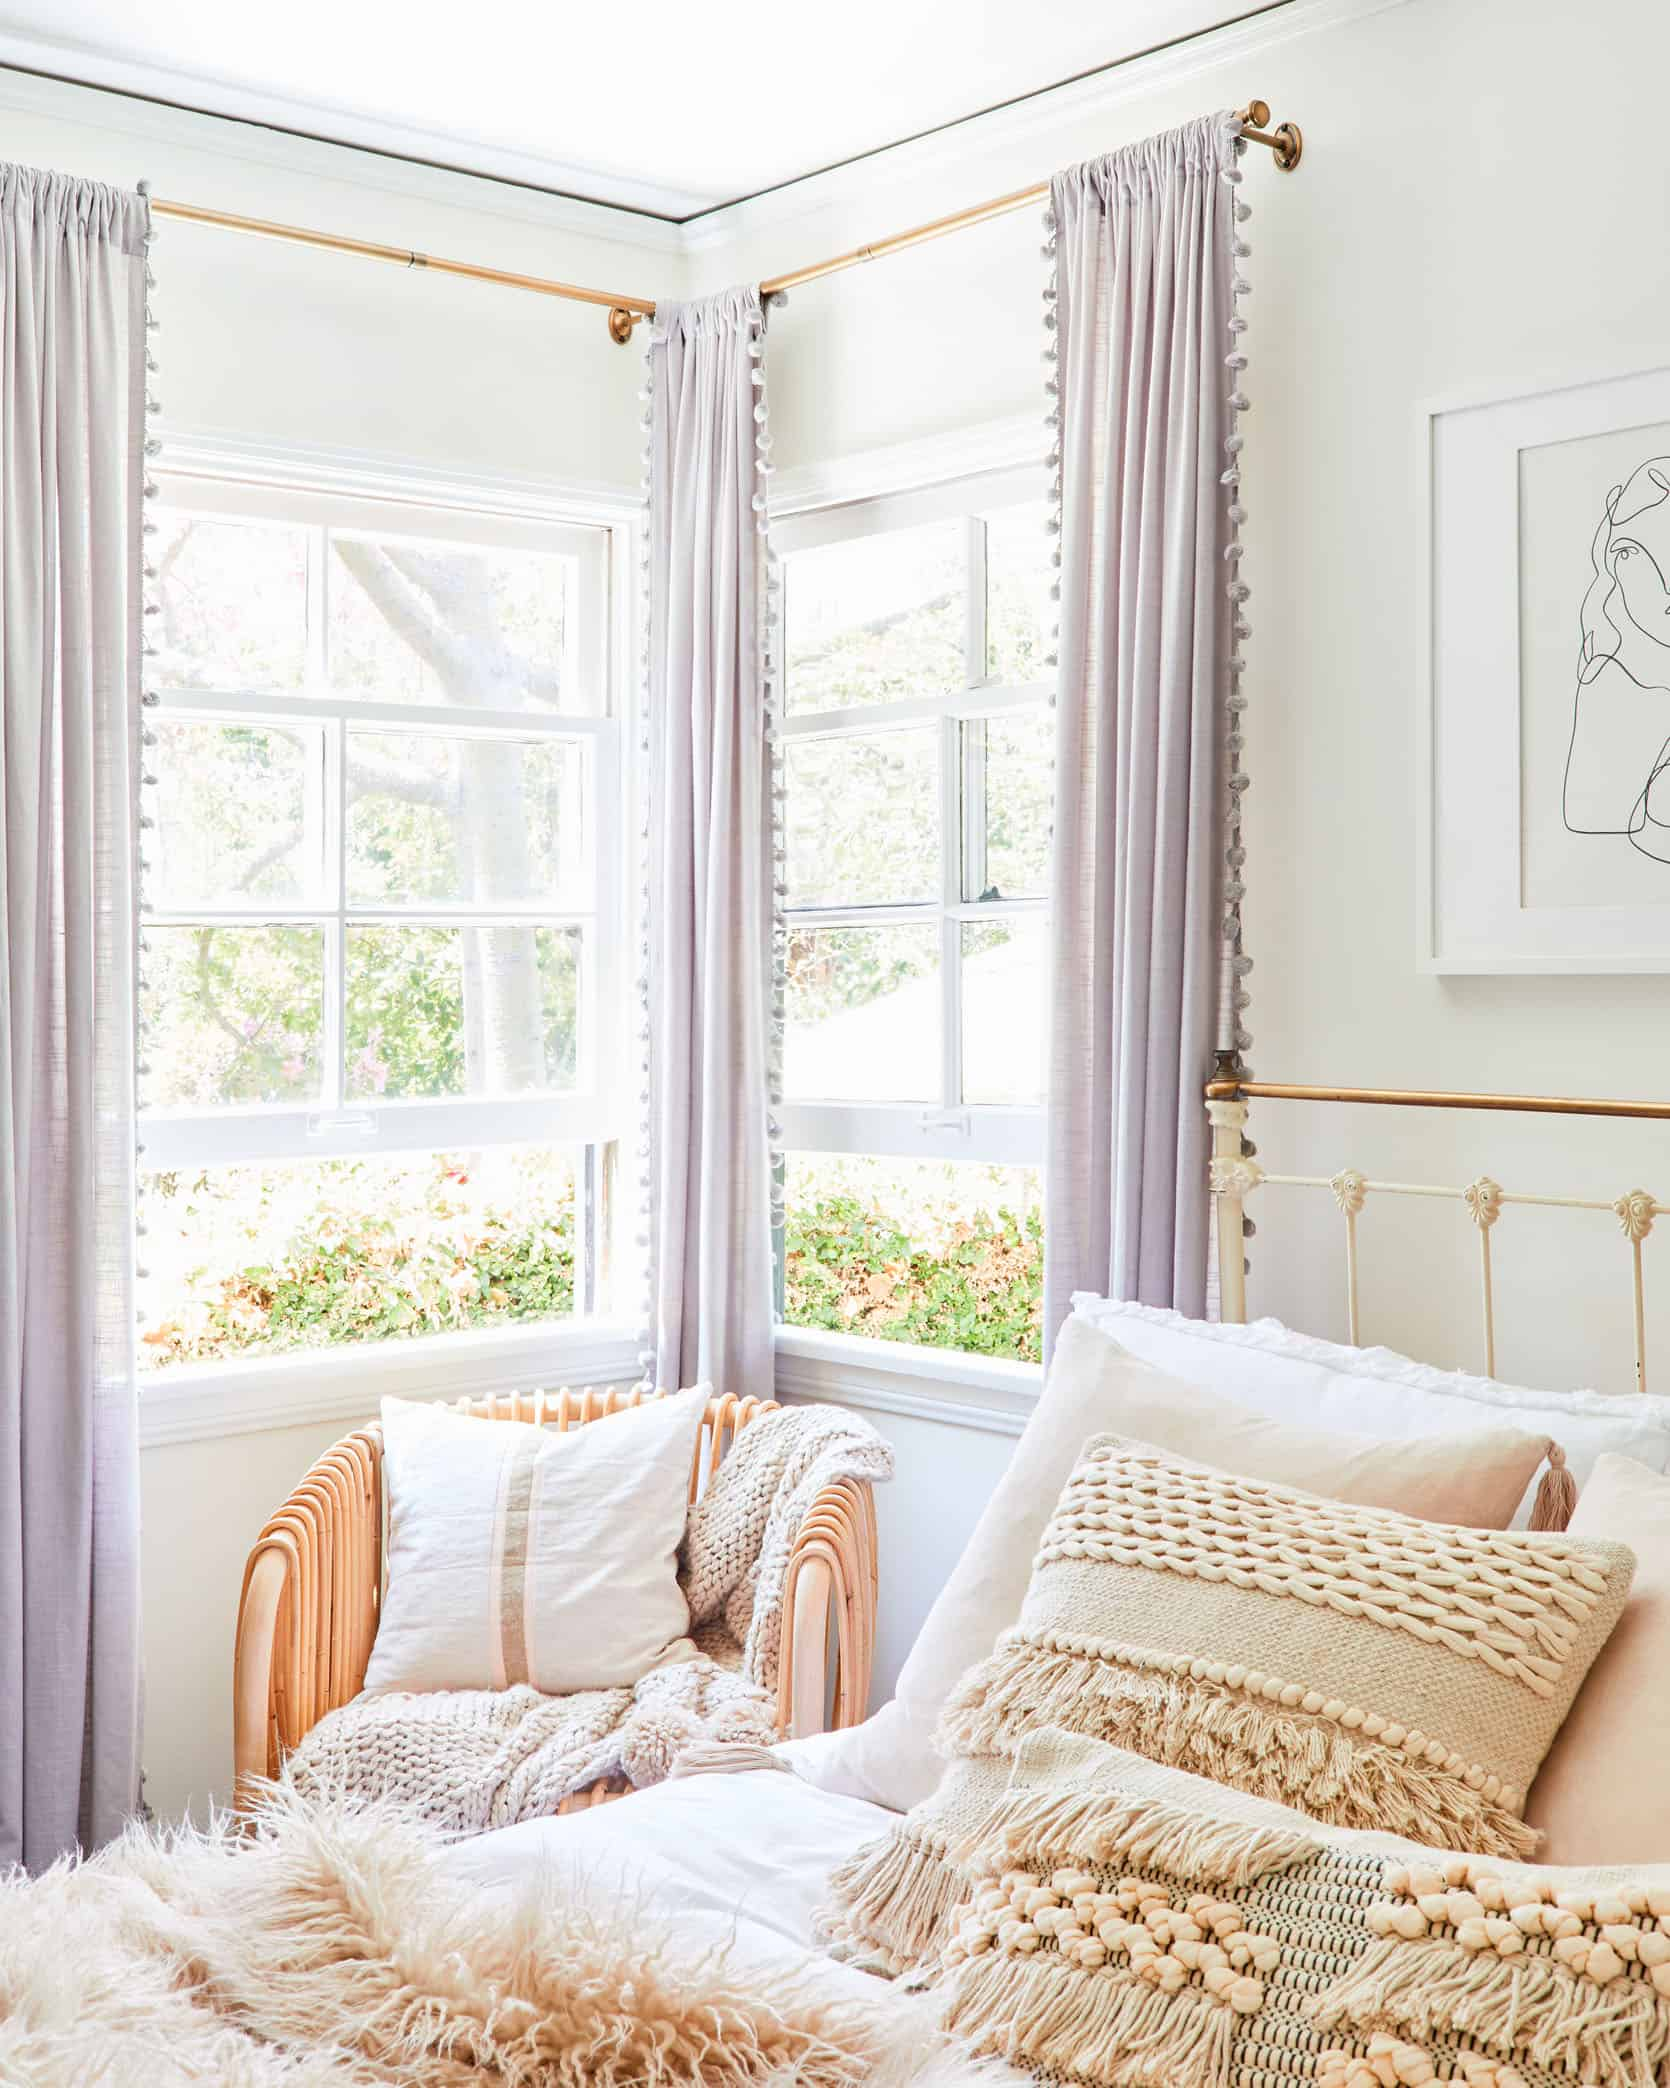 """A Refresh Of Our Favorite """"Child Client's"""" - Bedroom 8 Years Later Best Children's Lighting & Home Decor Online Store"""